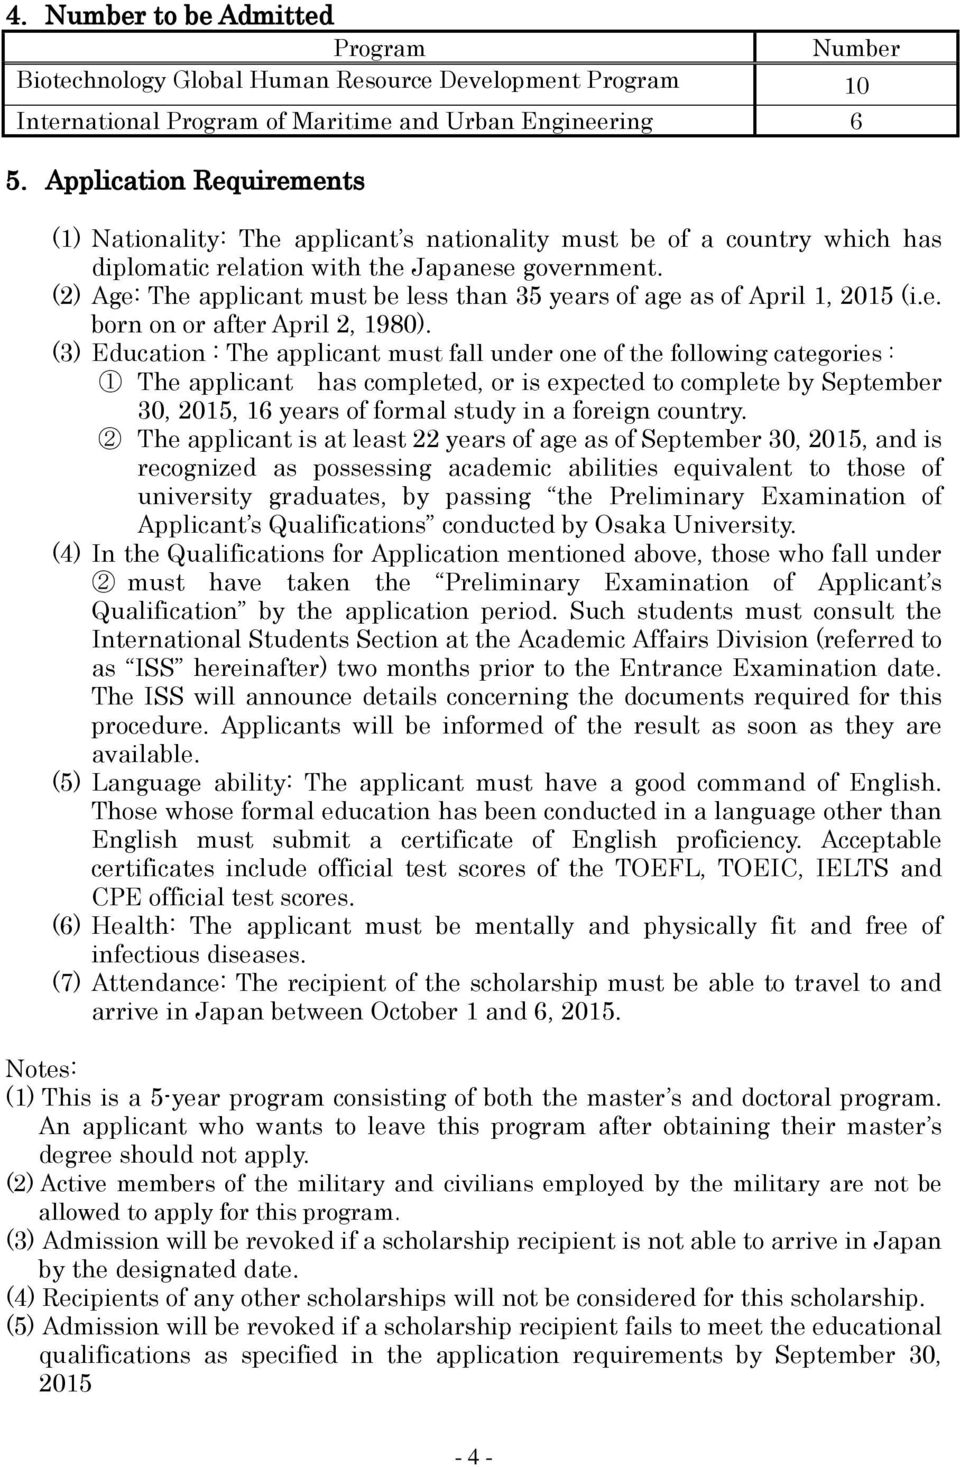 (2) Age: The applicant must be less than 35 years of age as of April 1, 2015 (i.e. born on or after April 2, 1980).